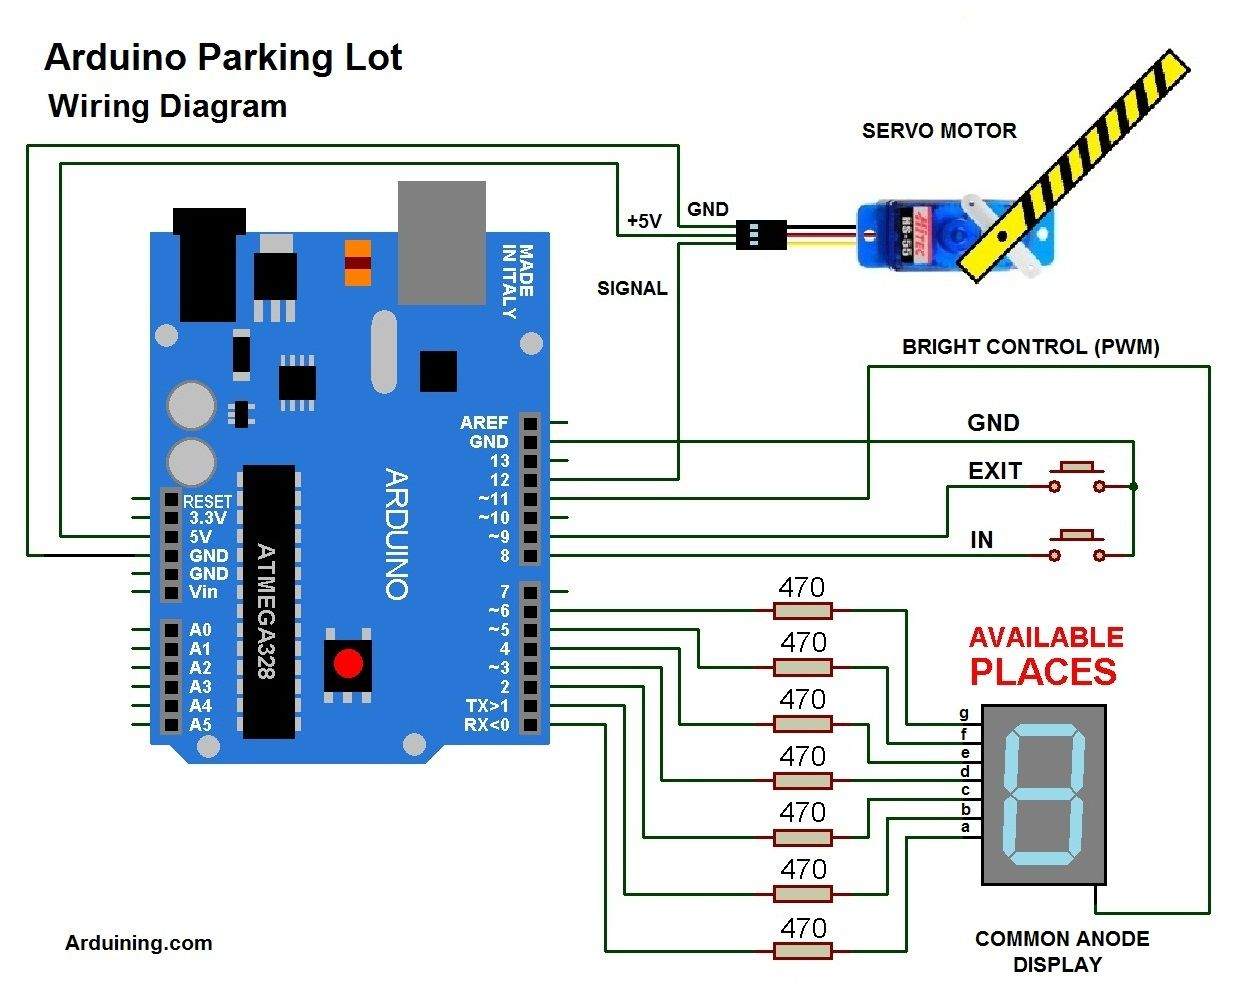 wiring diagram here is the code parkingl02 pde arduining com 08 parking circuit wiring diagram [ 1247 x 1008 Pixel ]